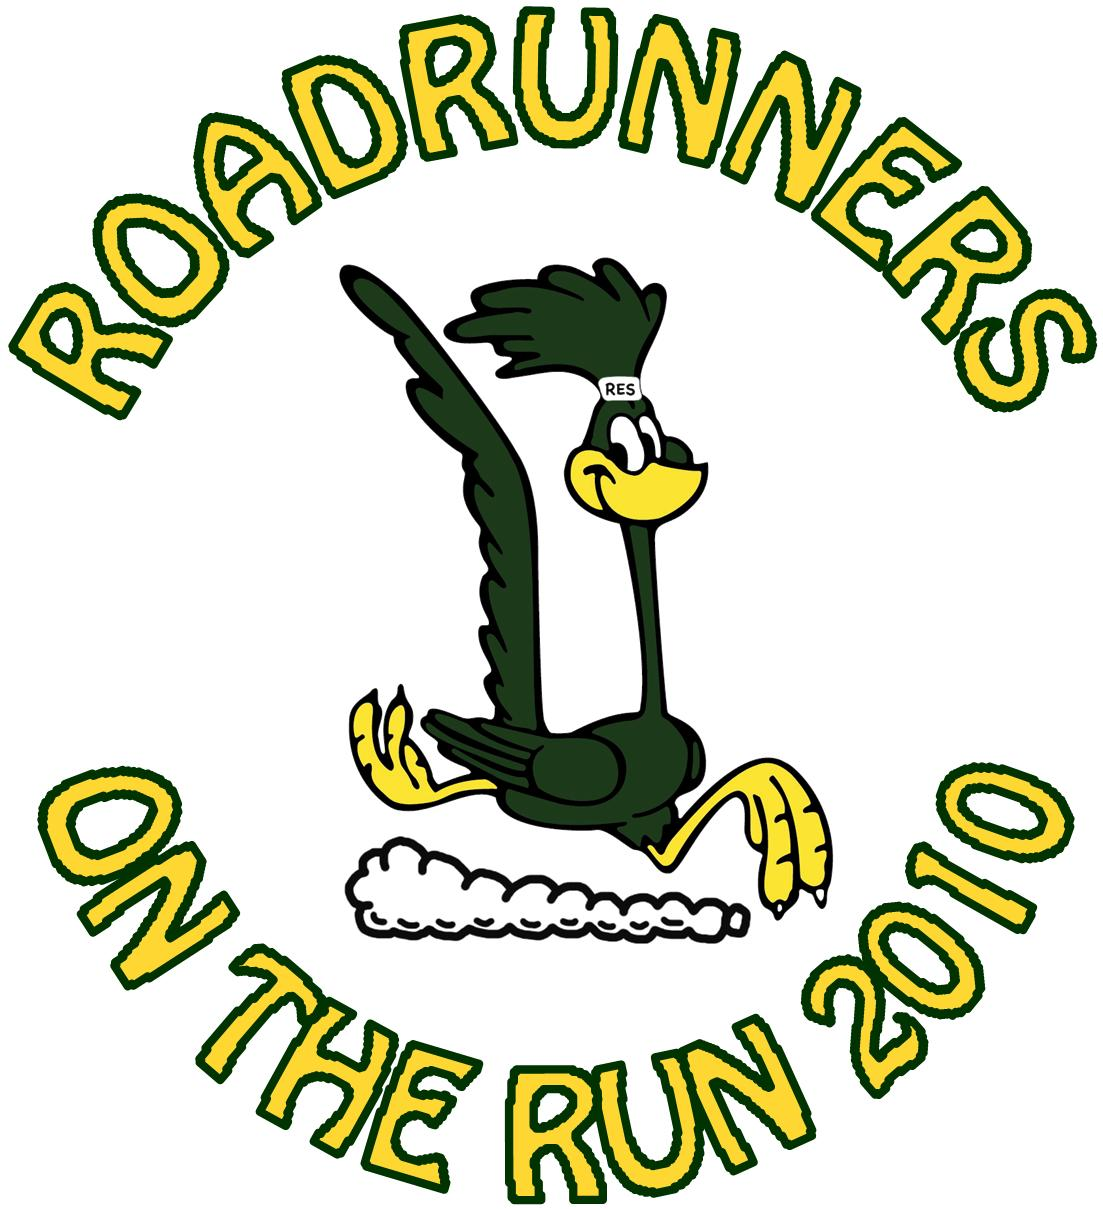 Hop Skip Run Walk Jump To Res For Roadrunners On The